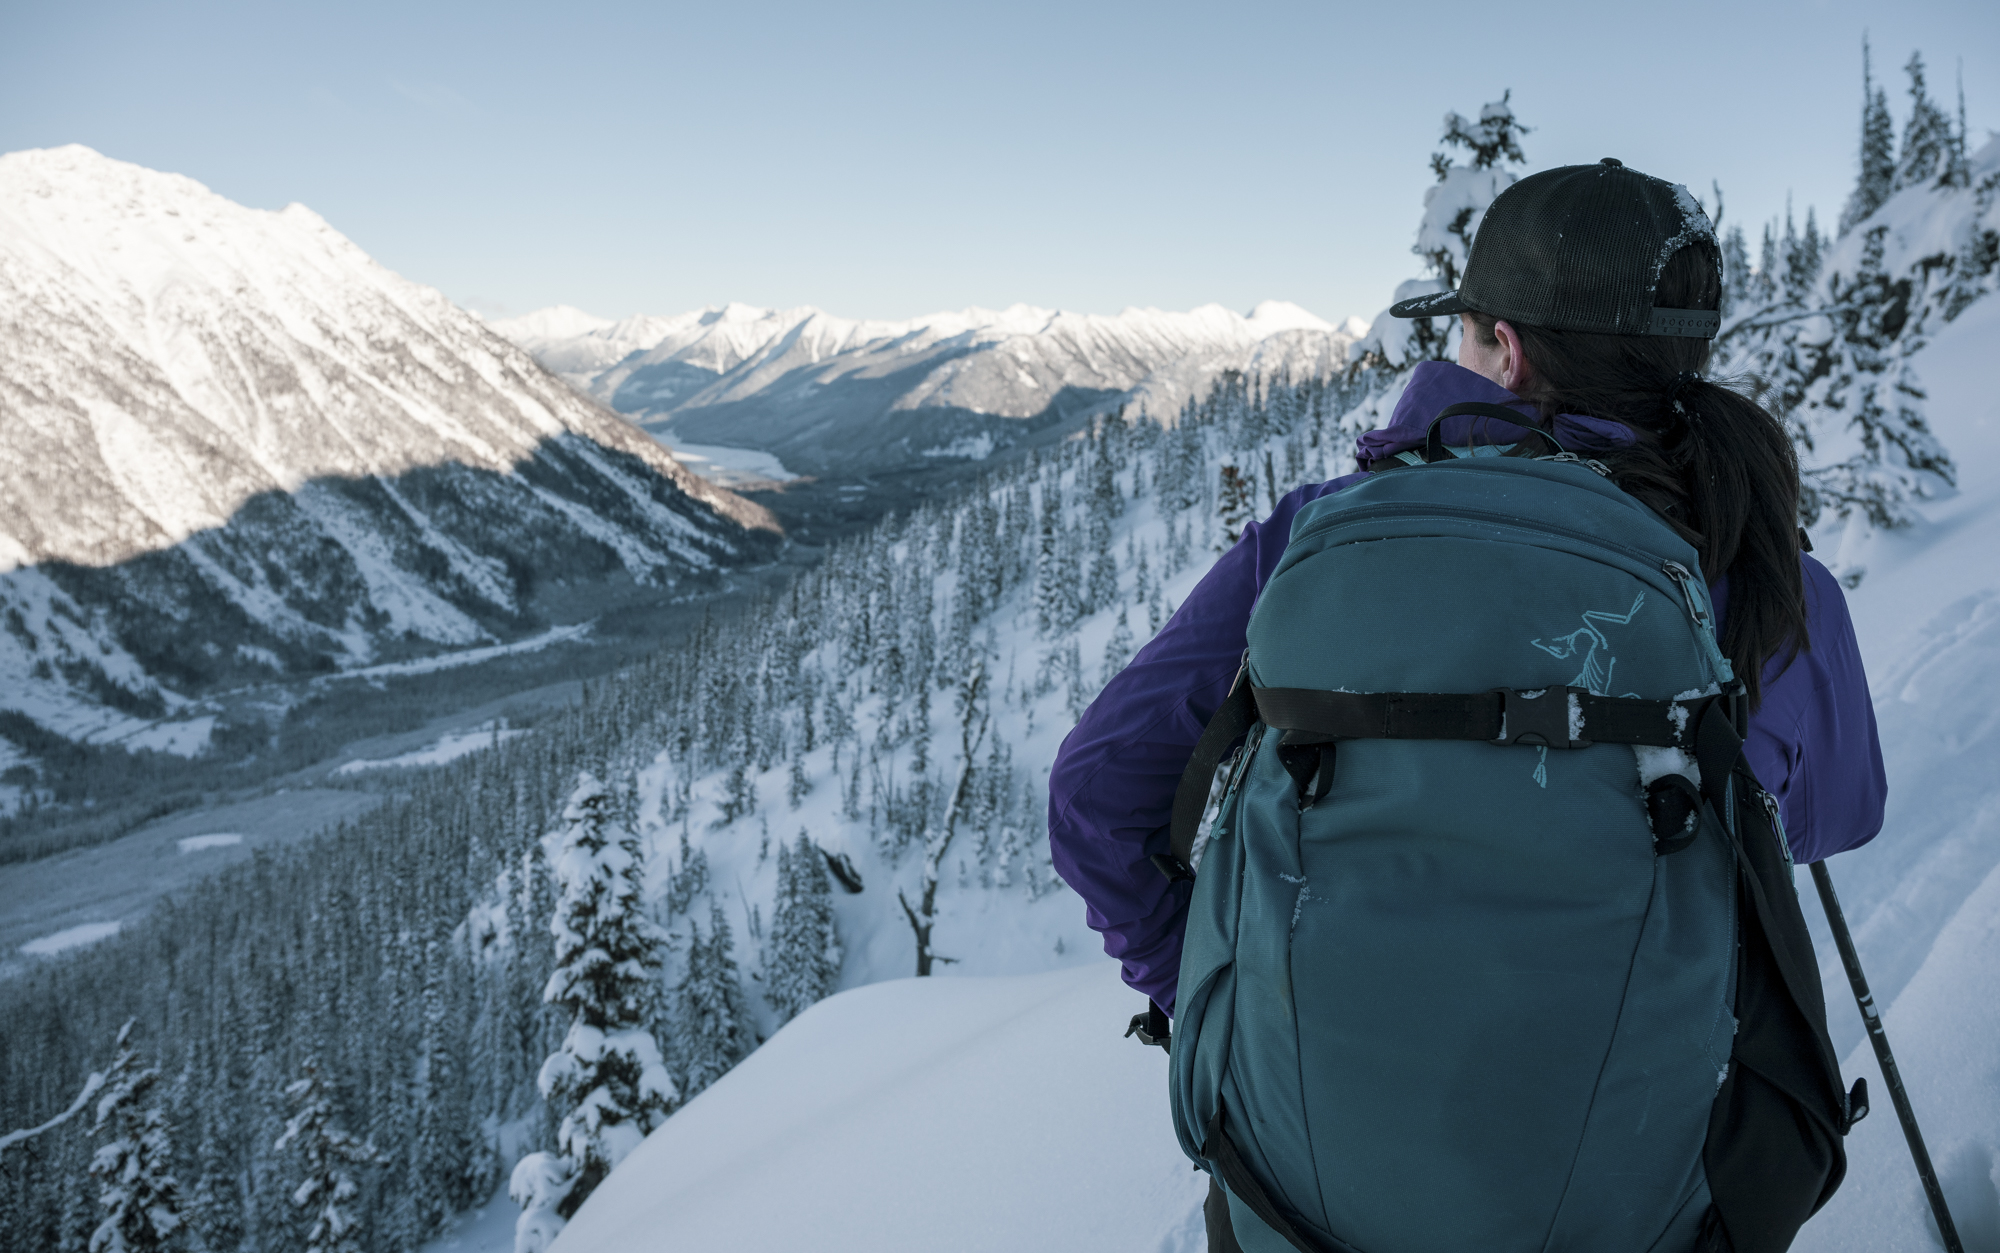 Jen Girardi scoping possibilities in the Duffy Lake zone, dreaming about Japan backcountry. Photo by Ben Girardi.